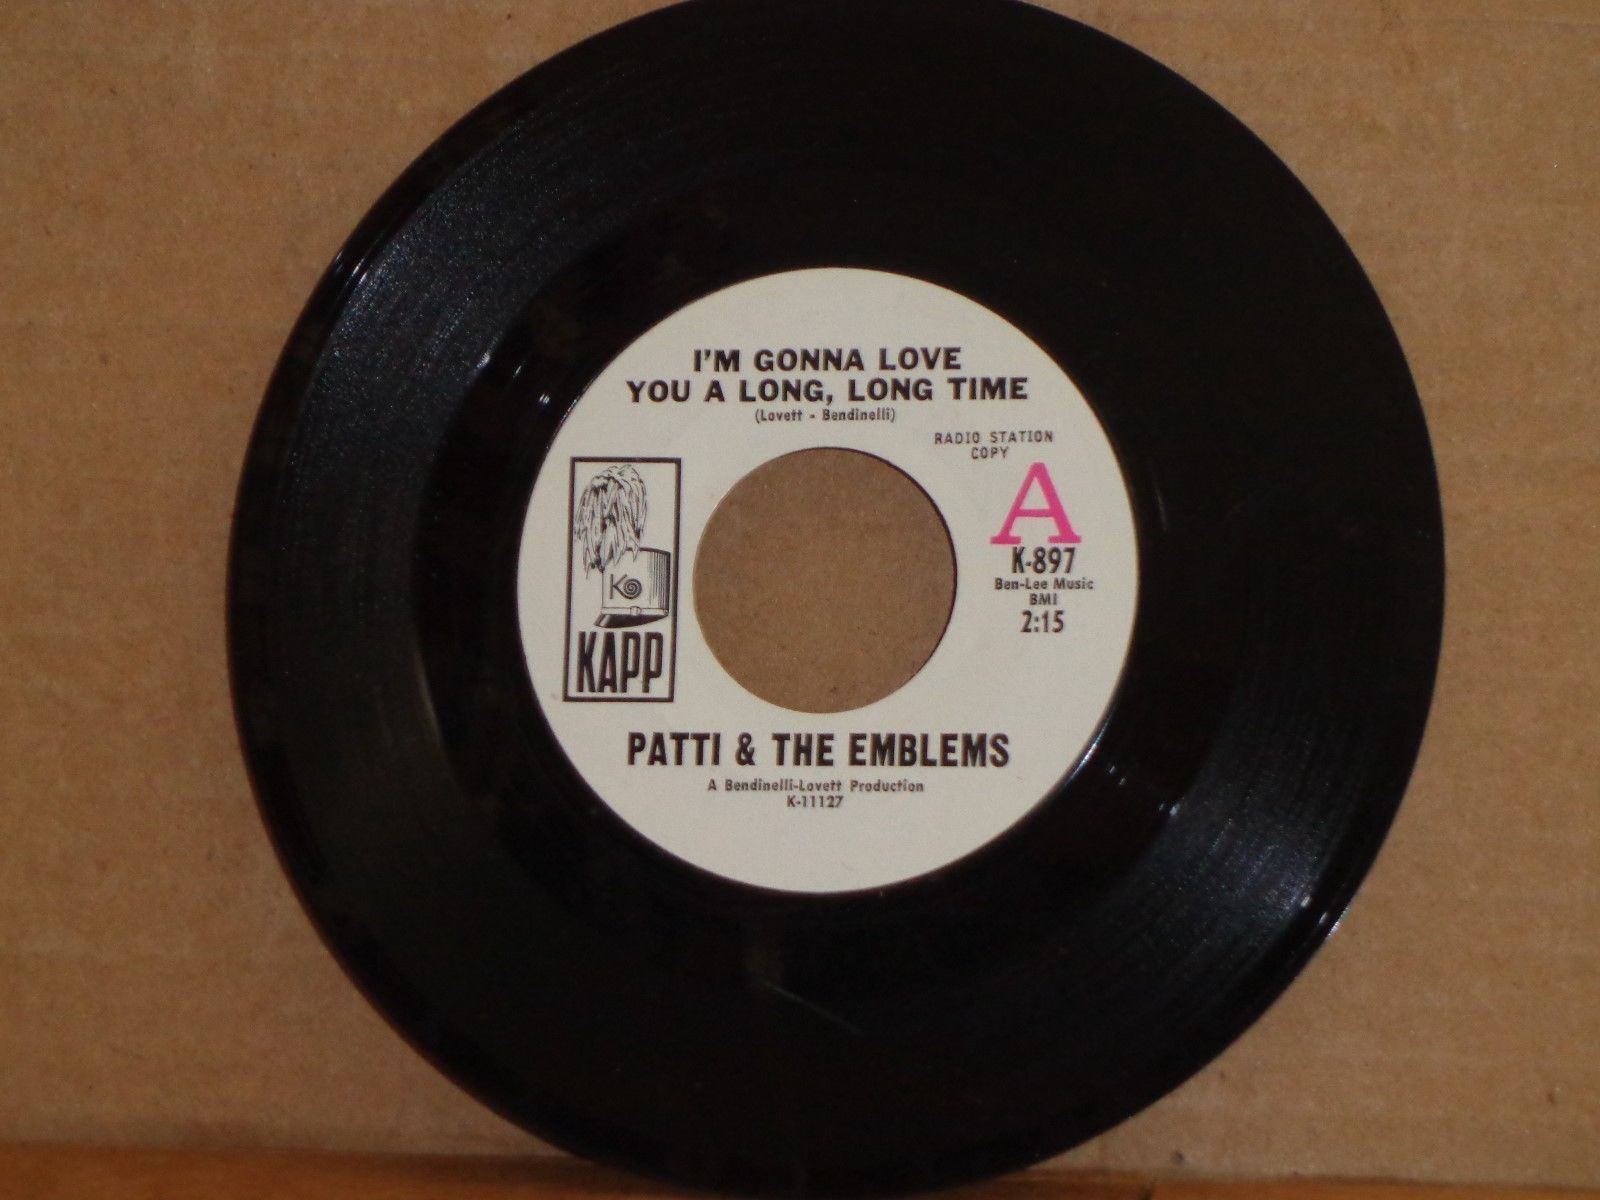 archived! $ 550 | Northern Soul    Patti & The Emblems ( Rare ) #vinyl https://t.co/OrOlHuP3pD https://t.co/CKWPnD2m6z